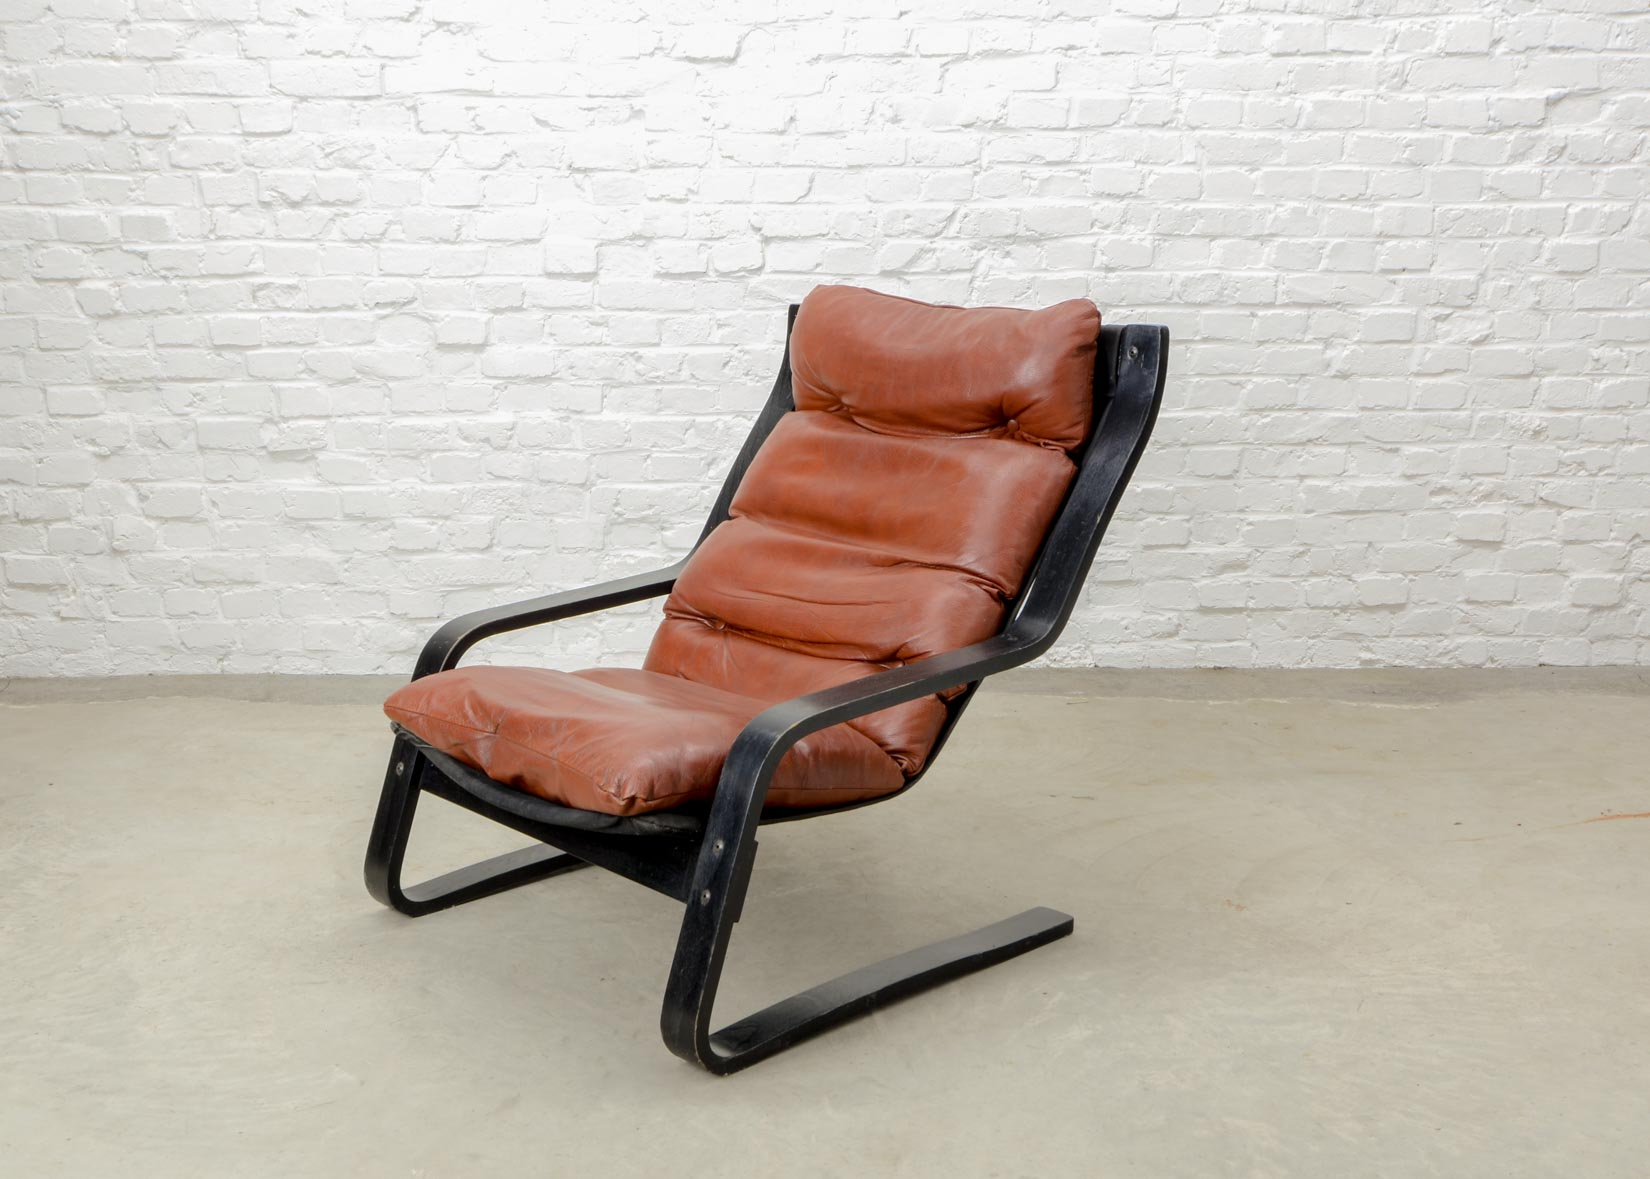 Strange Mid Century Modern Design Bouncy Maroon Leather Lounge Chair Beatyapartments Chair Design Images Beatyapartmentscom